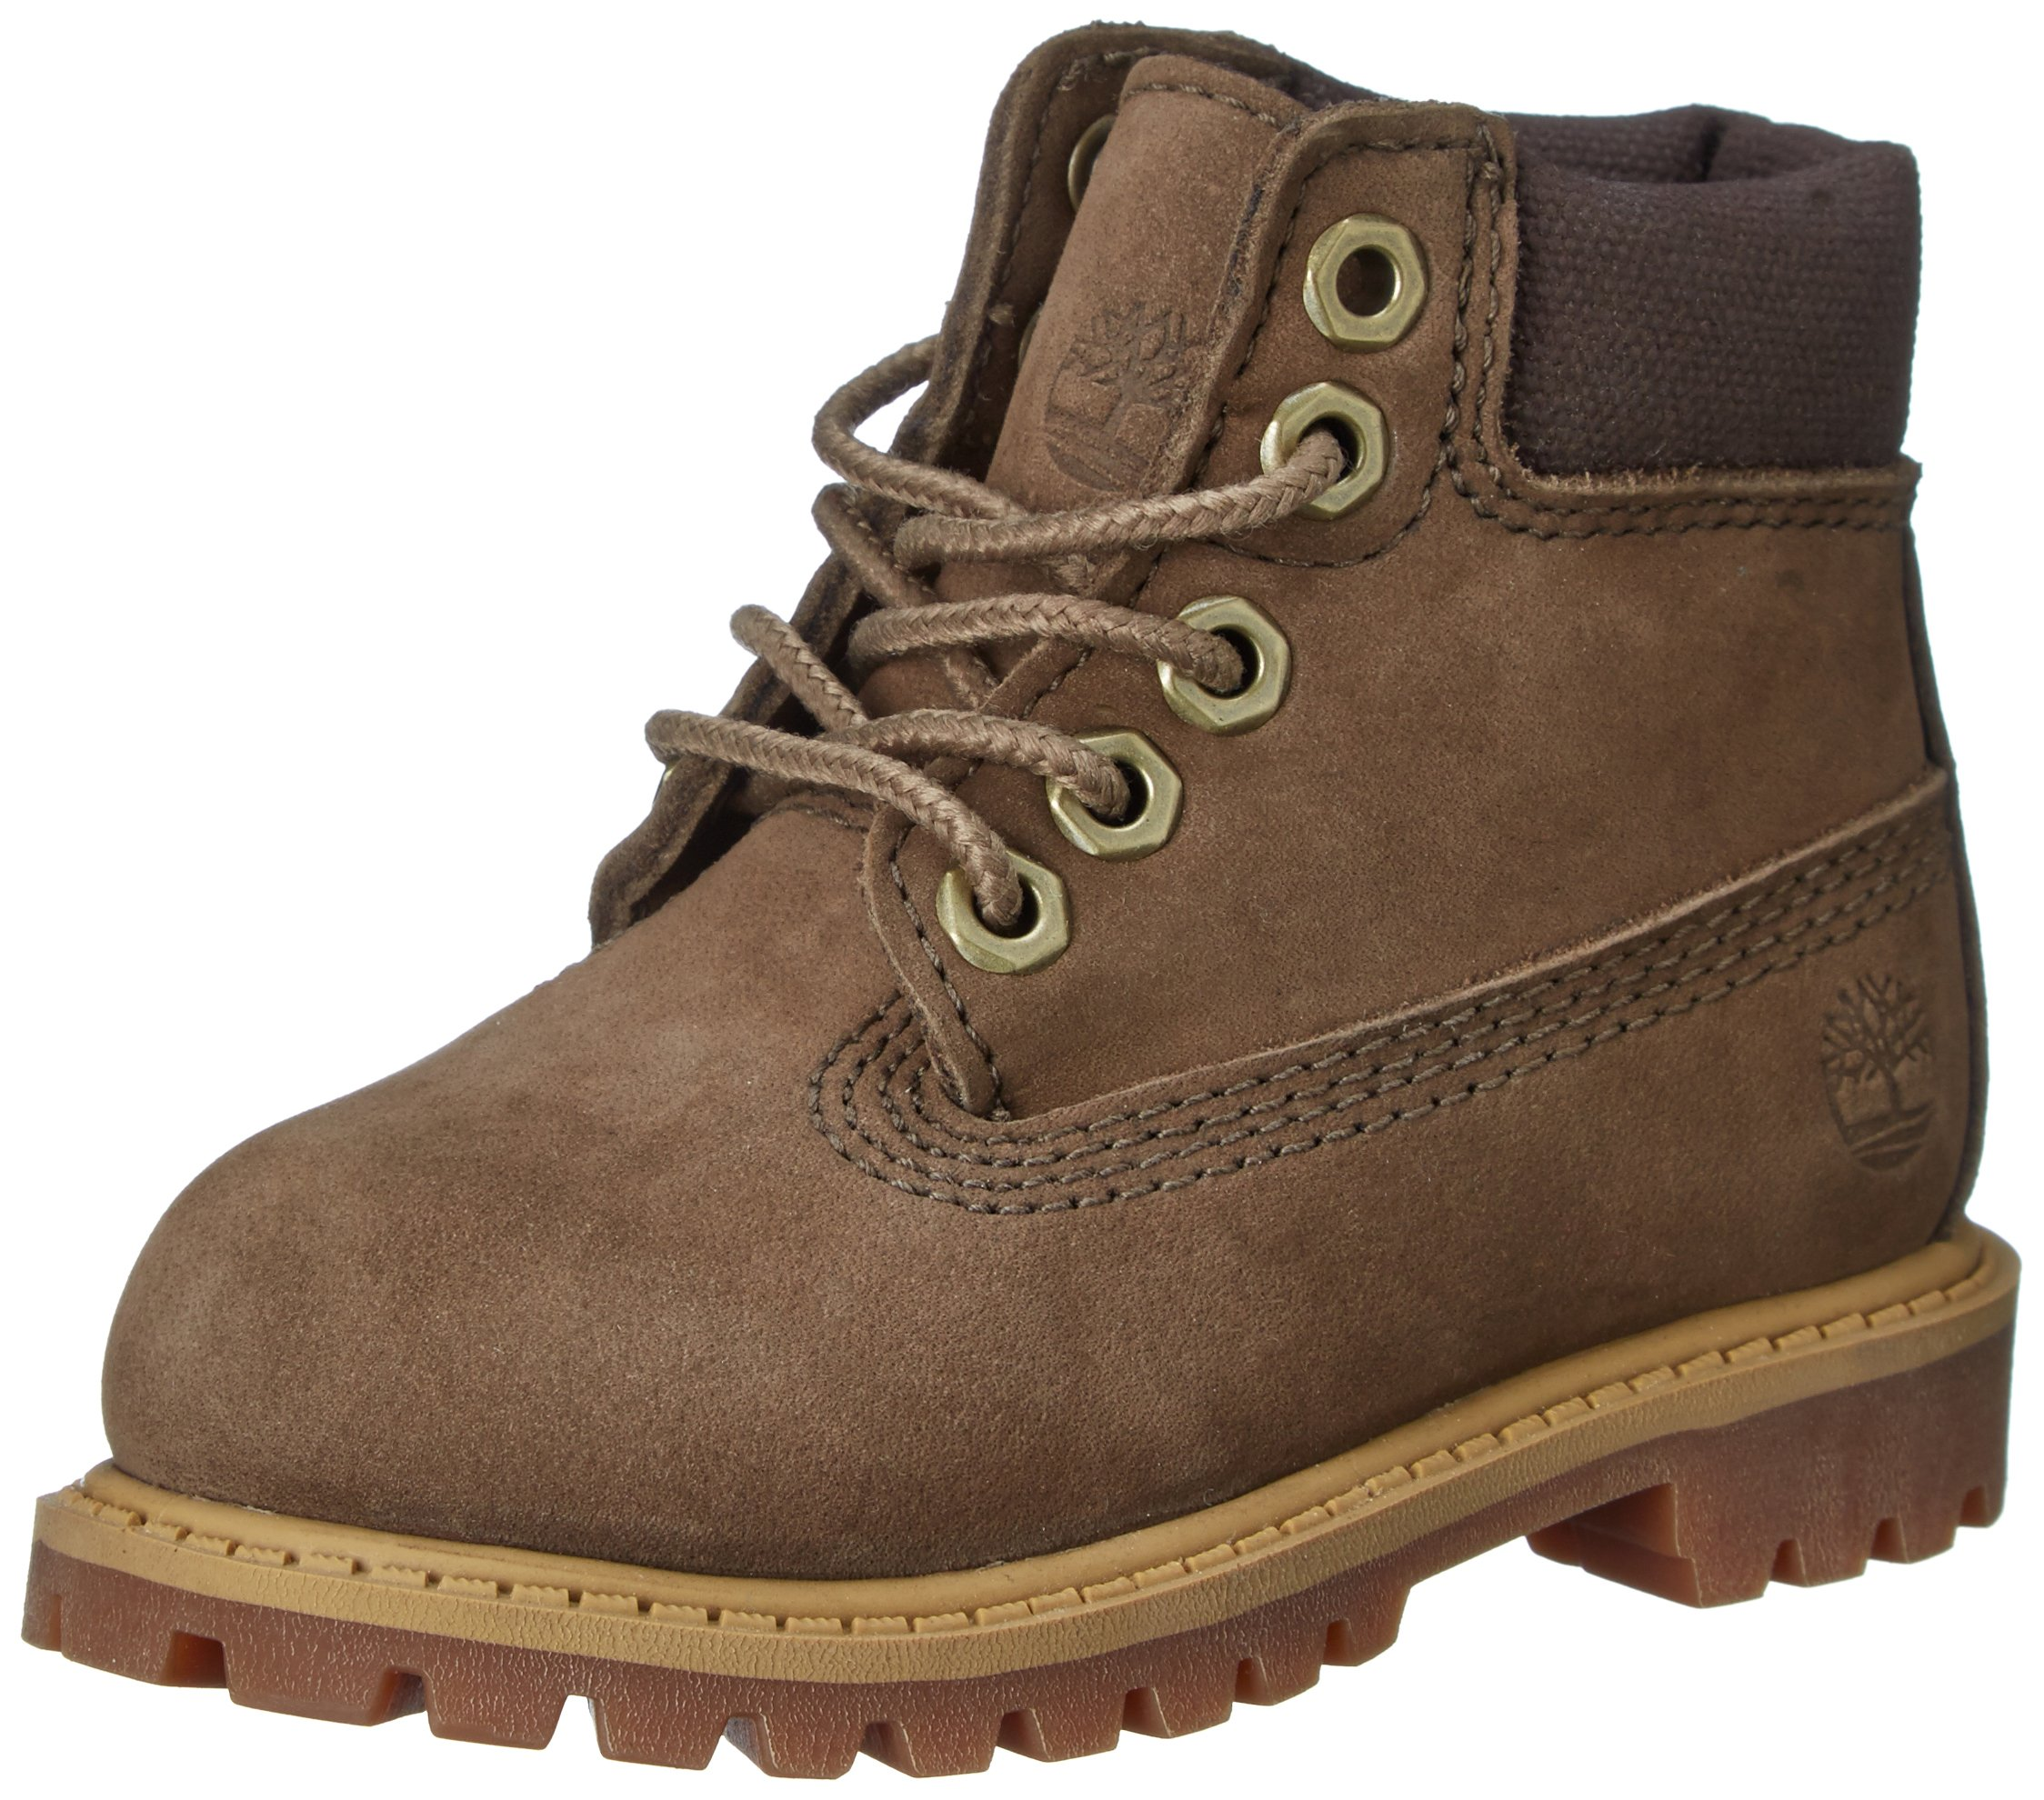 Timberland 6'' Classic Waterproof Boot (Toddler/Little Kid/Big Kid),Canteen,13 M US Little Kid